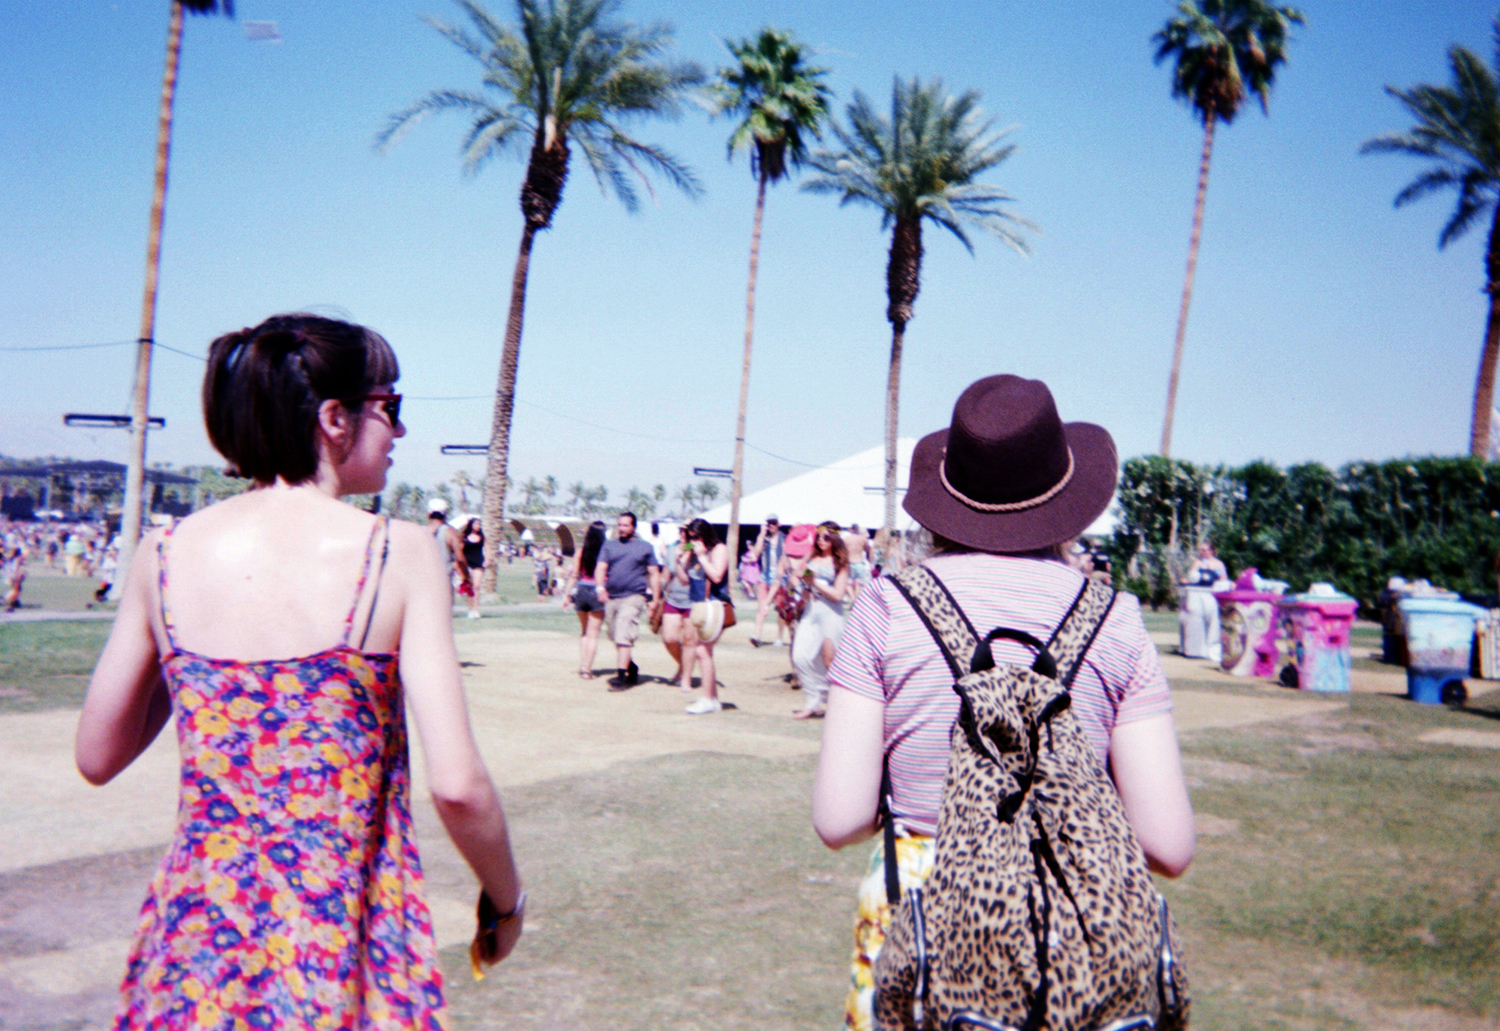 How Coachella Inspires Fashion Brands